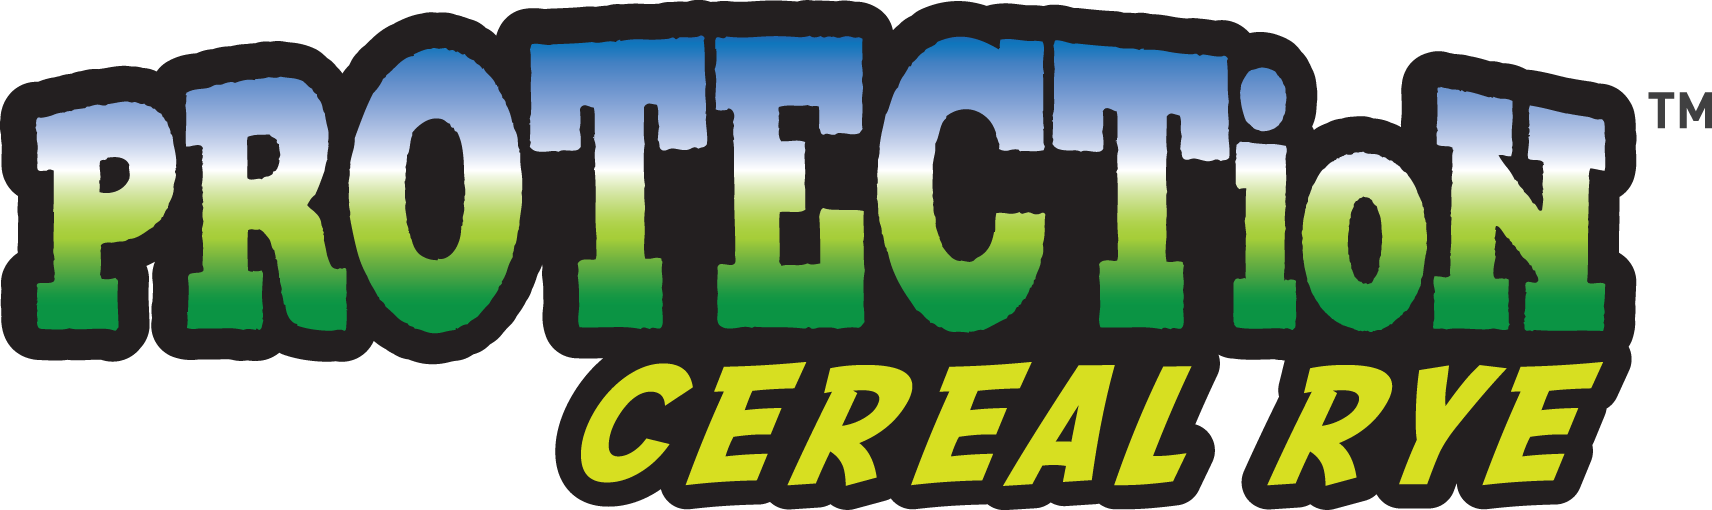 PROTECTioN CerealRye logo